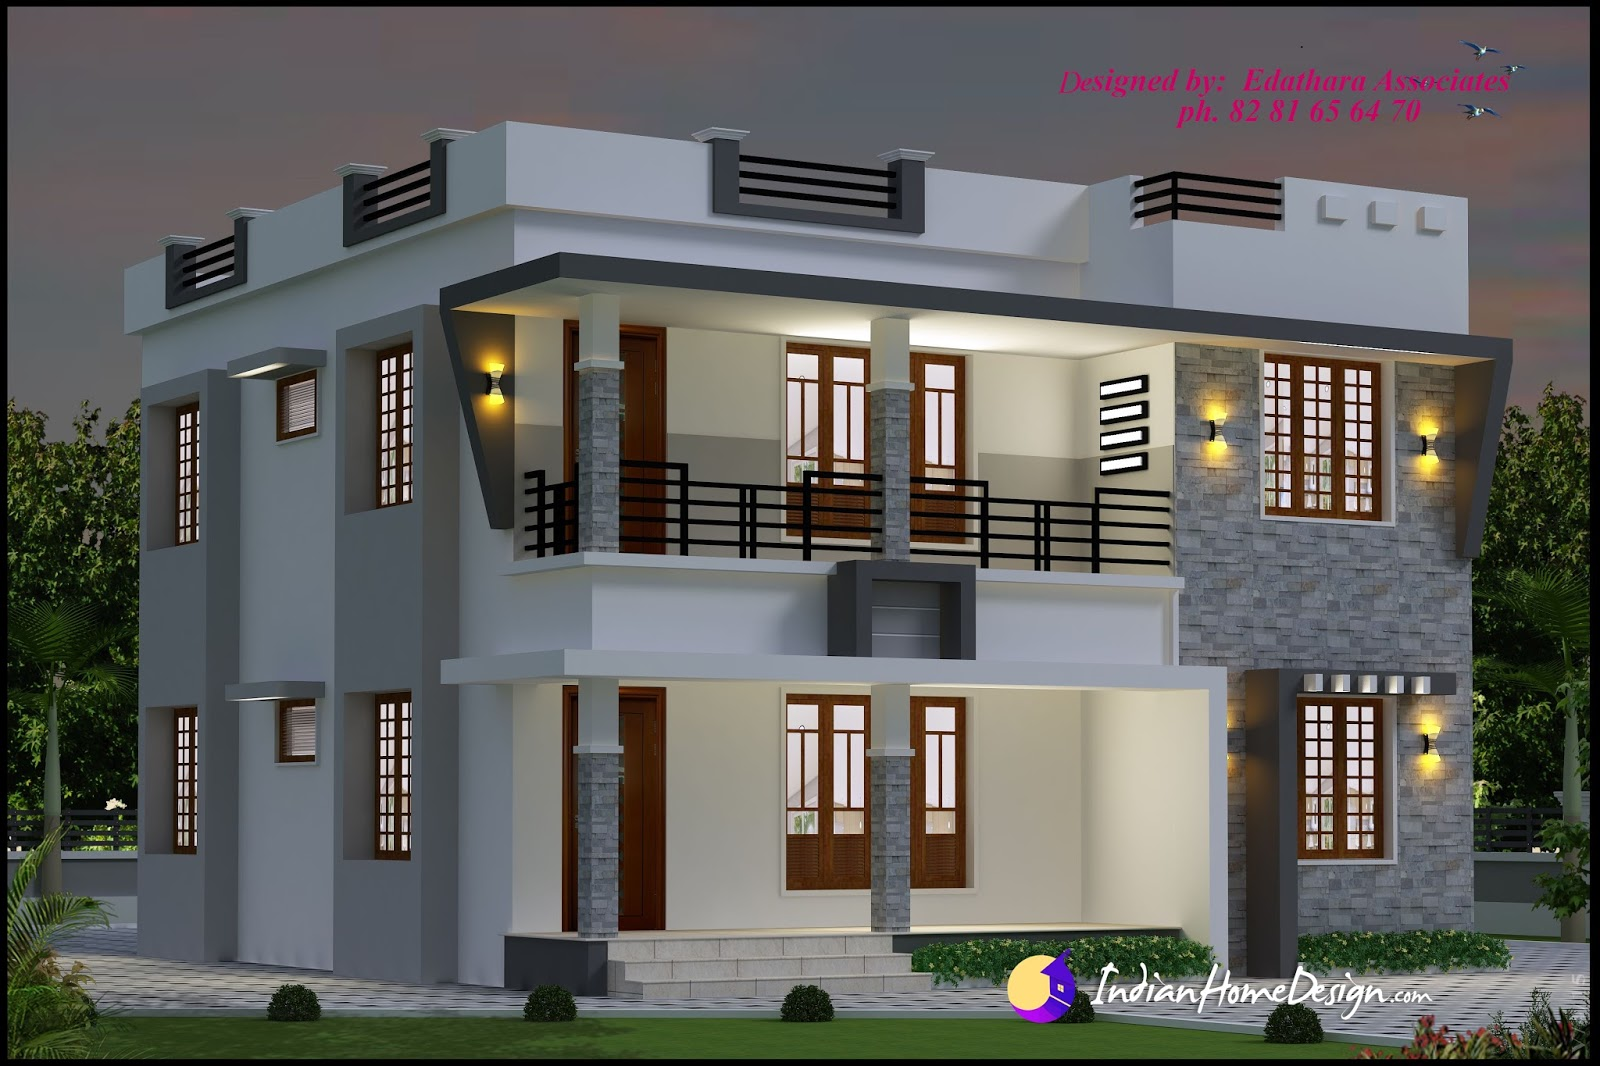 1696 sqft modern double floor kerala home design indian for Modern home decor india